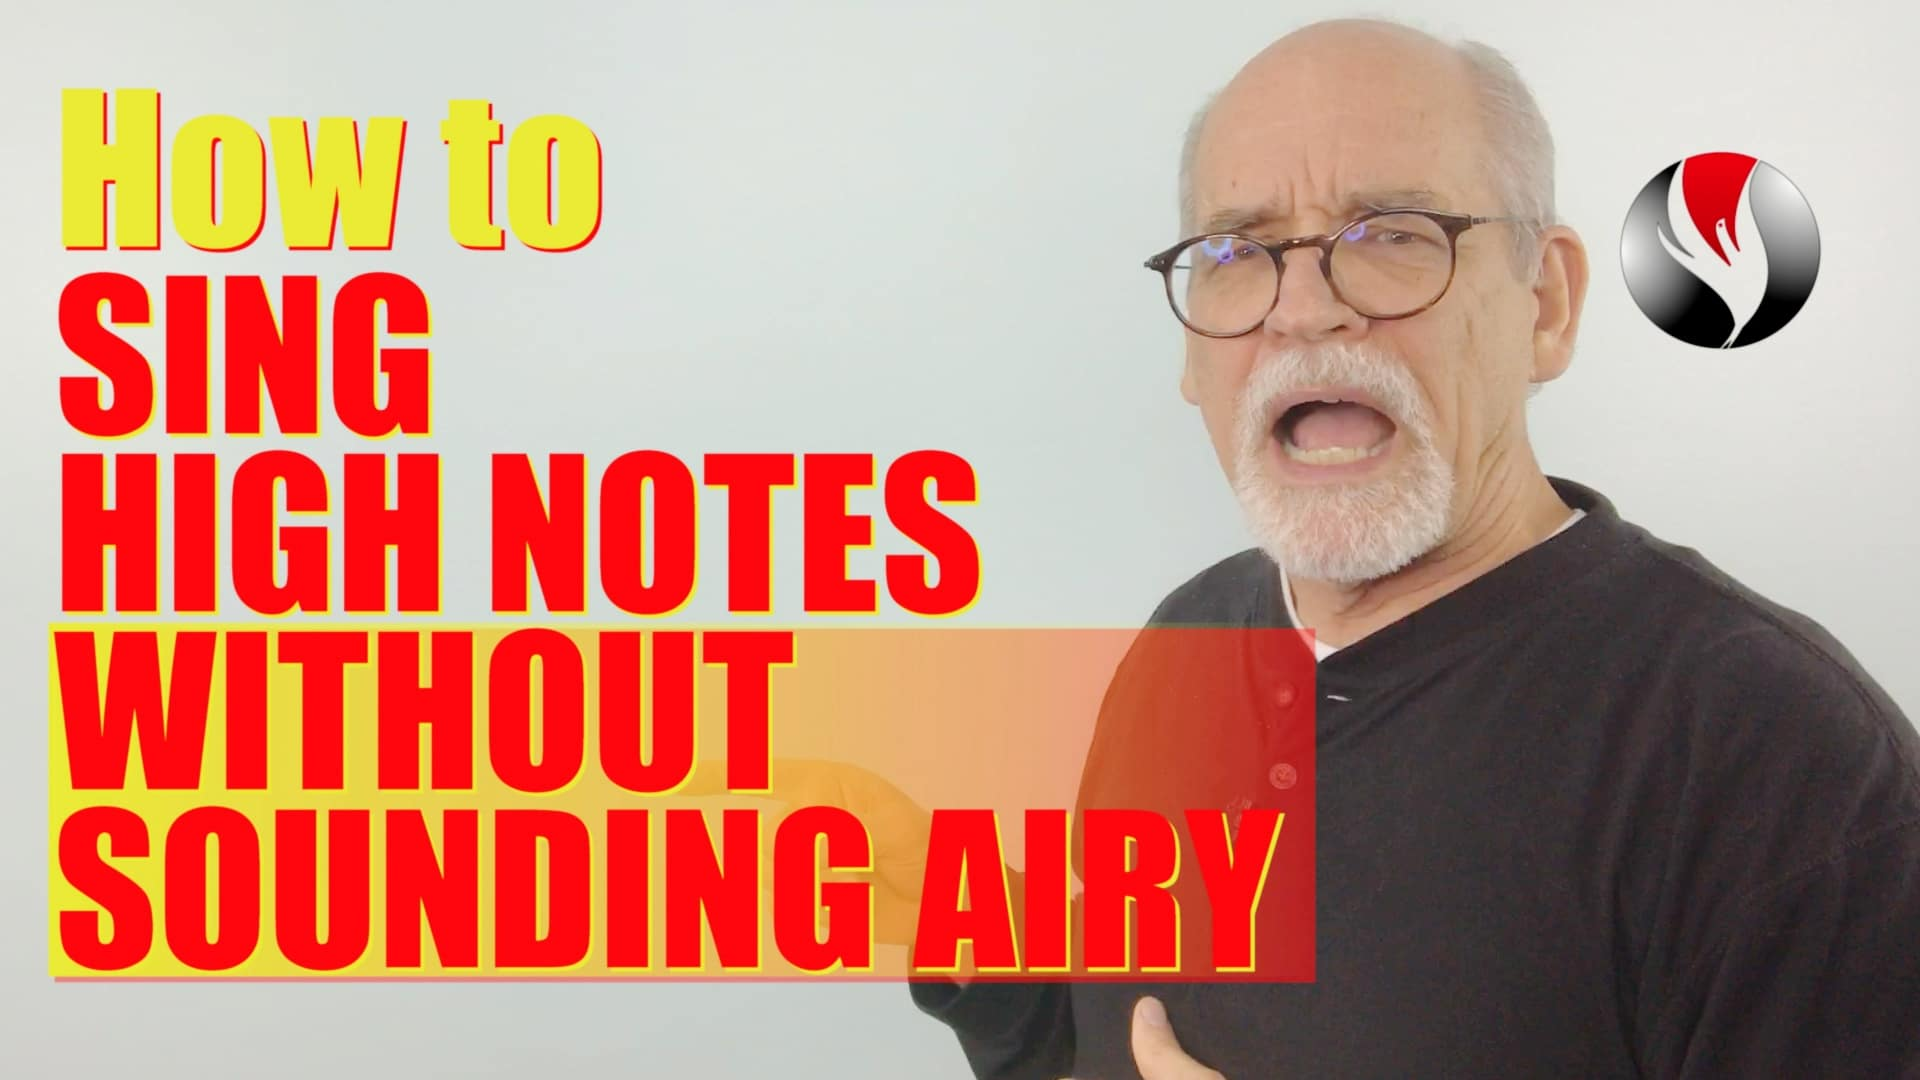 How To Sing High Notes Without Sounding Airy – 3 Simple Exercises for Quick Power On High Notes